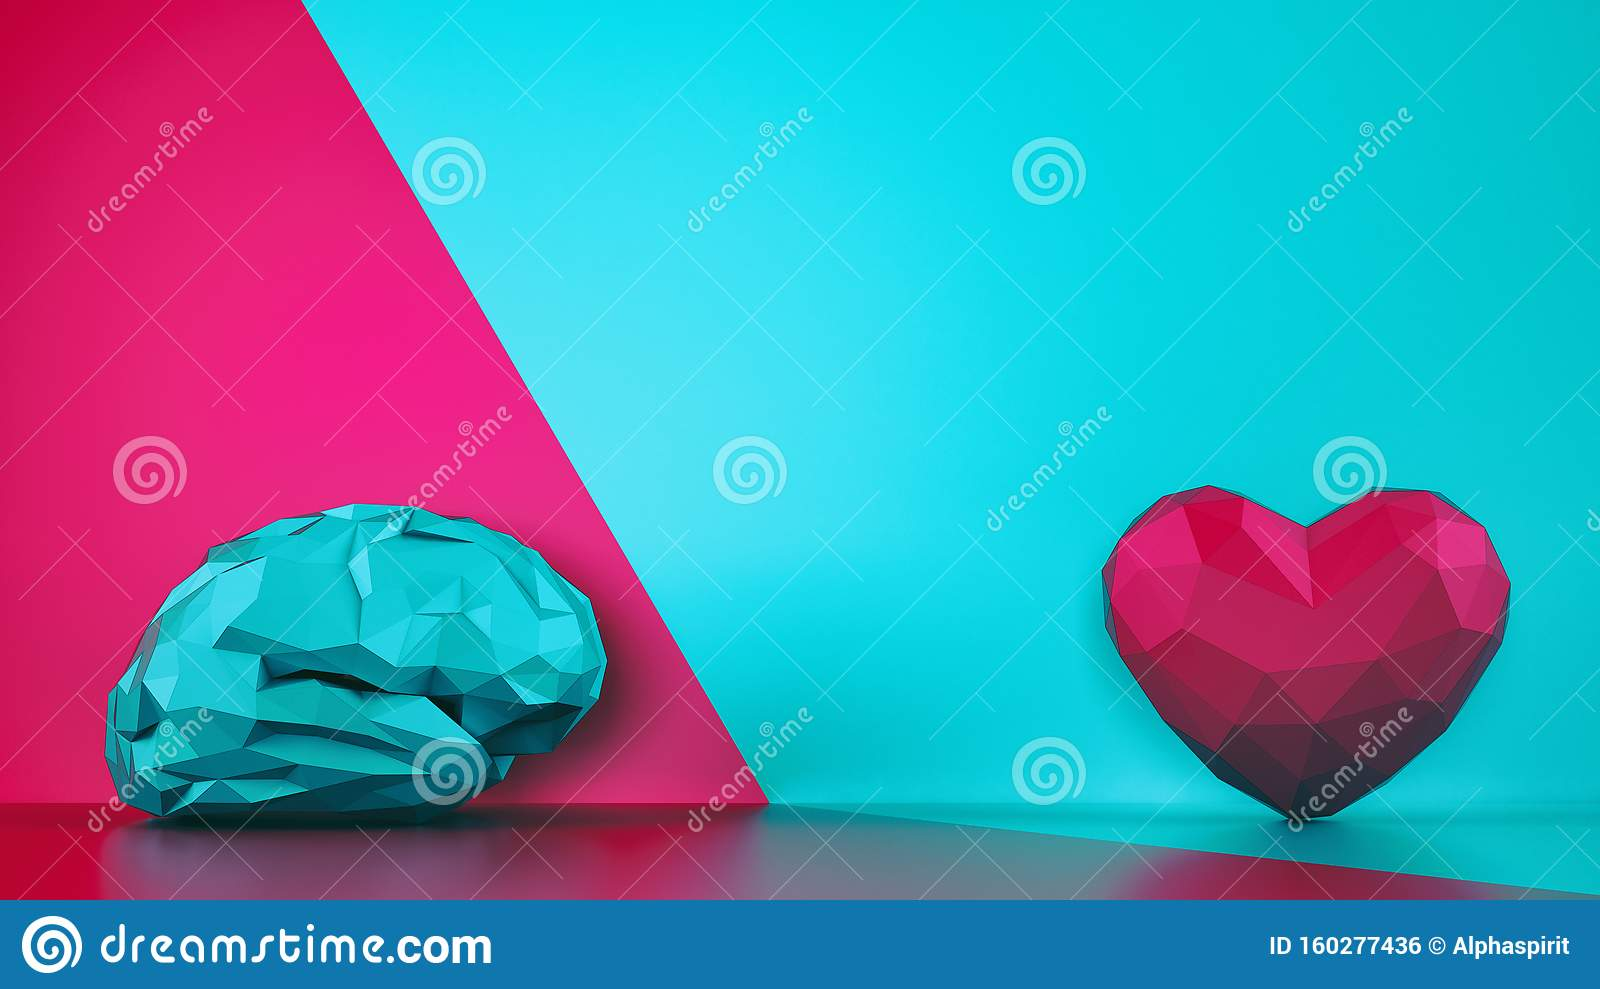 Comparison between reason and feeling. Faceted brain and heart on a two tone background. 3D Rendering